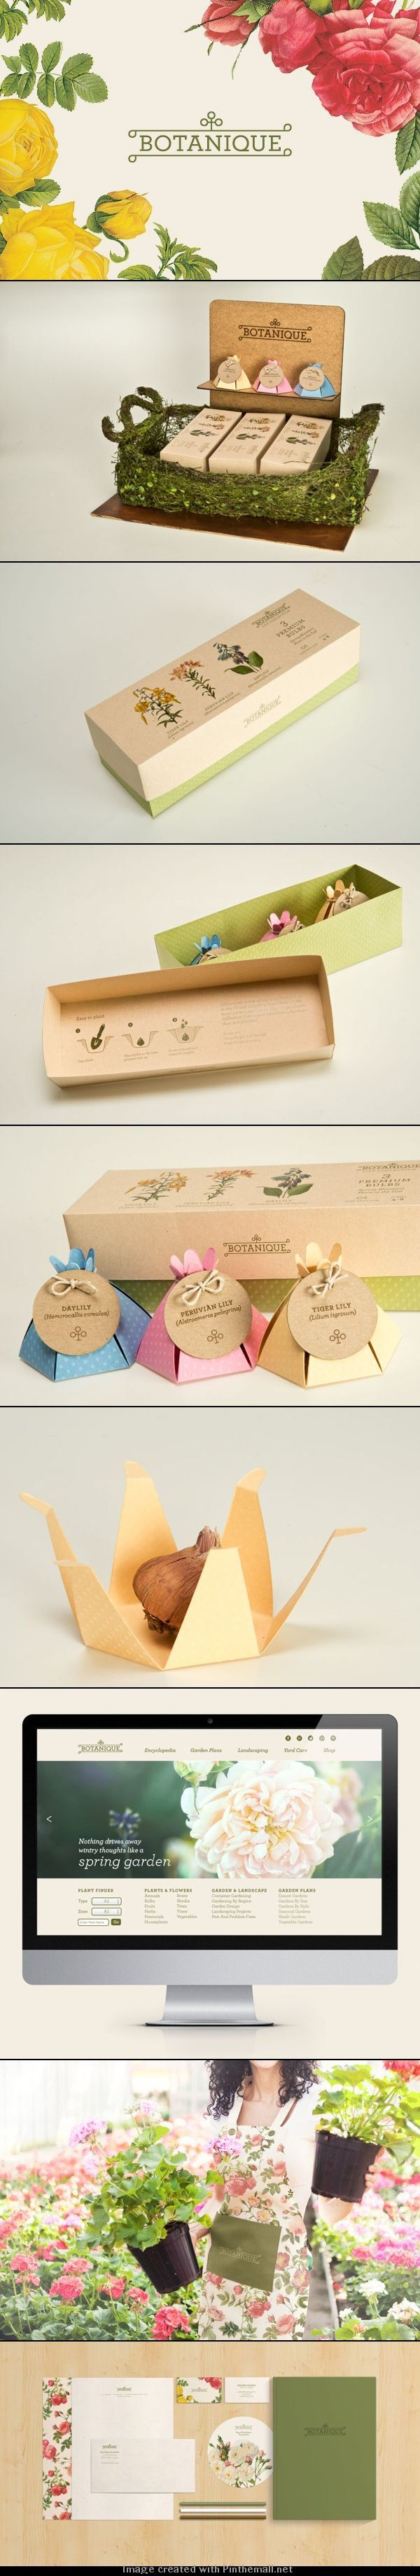 Beautiful Botanique packaging